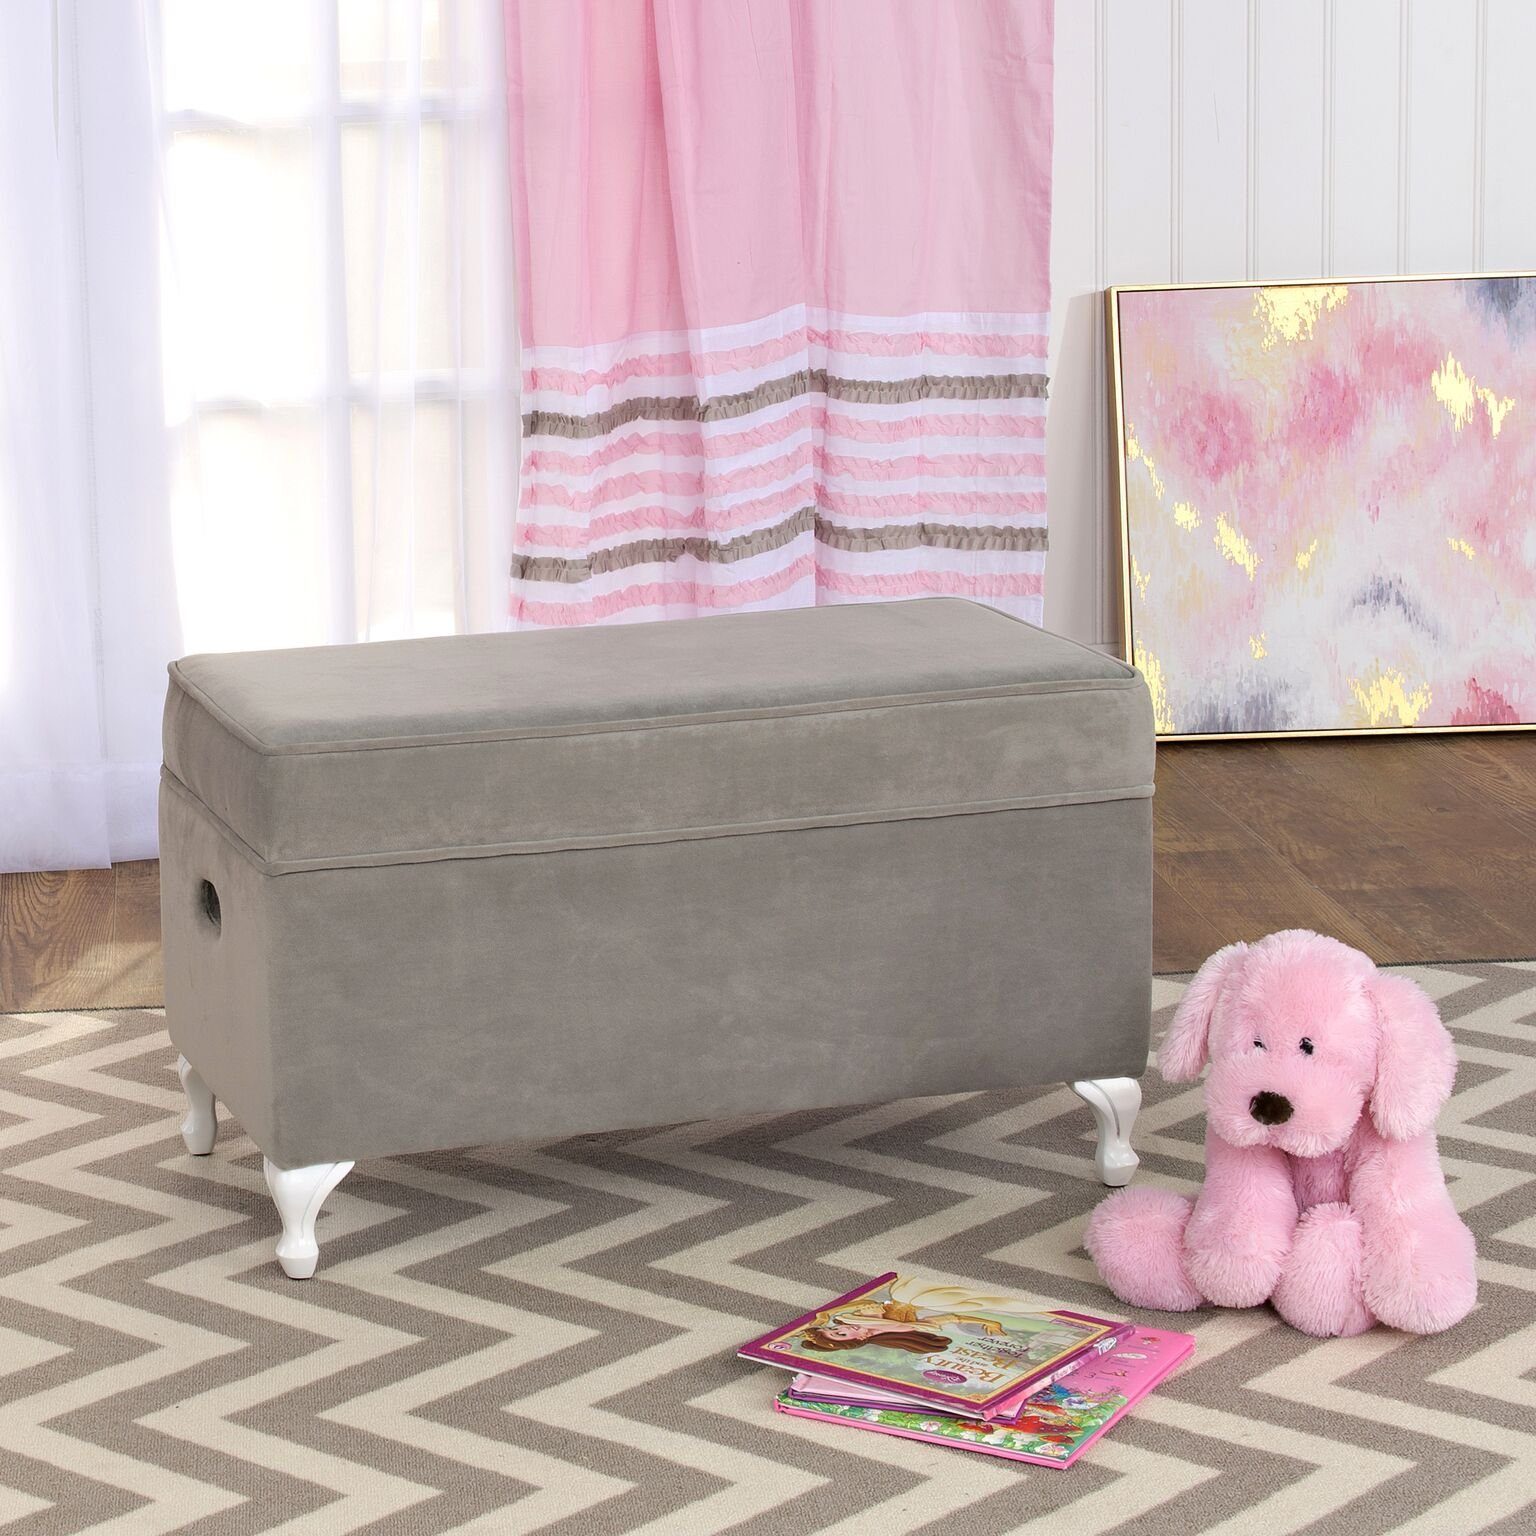 HomePop Diva Youth Velvet Decorative Storage Bench with White Wood Legs, Grey by HomePop (Image #3)